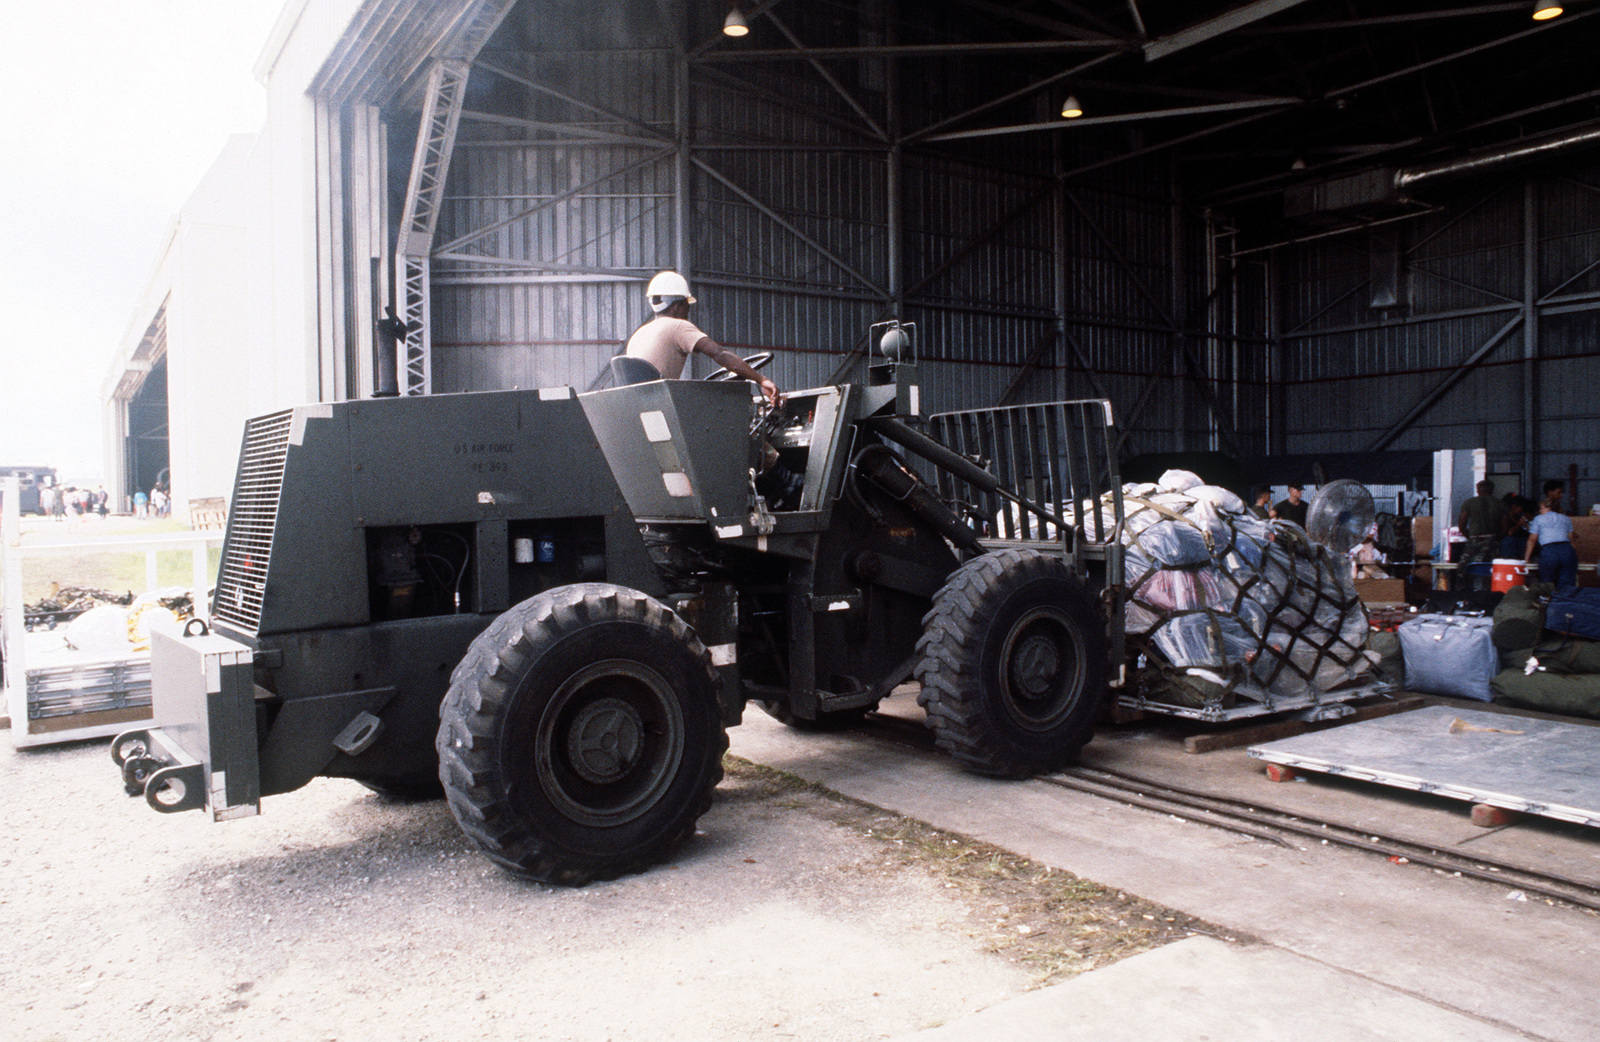 A US Air Force M220BFL rough terrain fork lift moves a pallet of luggage of evacuees from the Philippine Islands. The evacuation is the result of the June 10 eruption of Mount Pinatubo, which deposited more than four inches of volcanic ash on the Islands. More than 20,000 evacuees have been removed from the area as a part of the US military's Operation Fiery Vigil